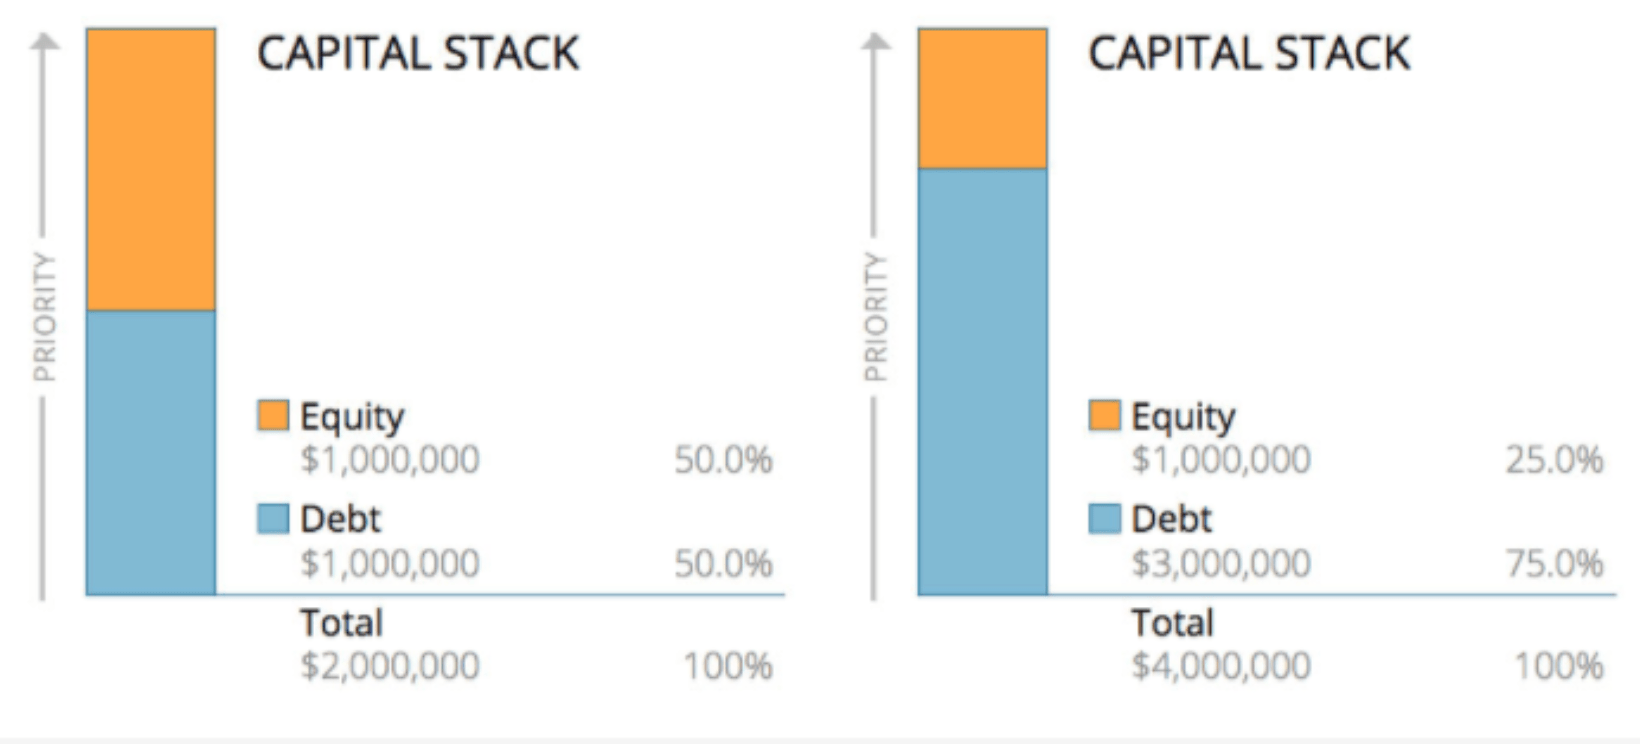 Capital Stack Example